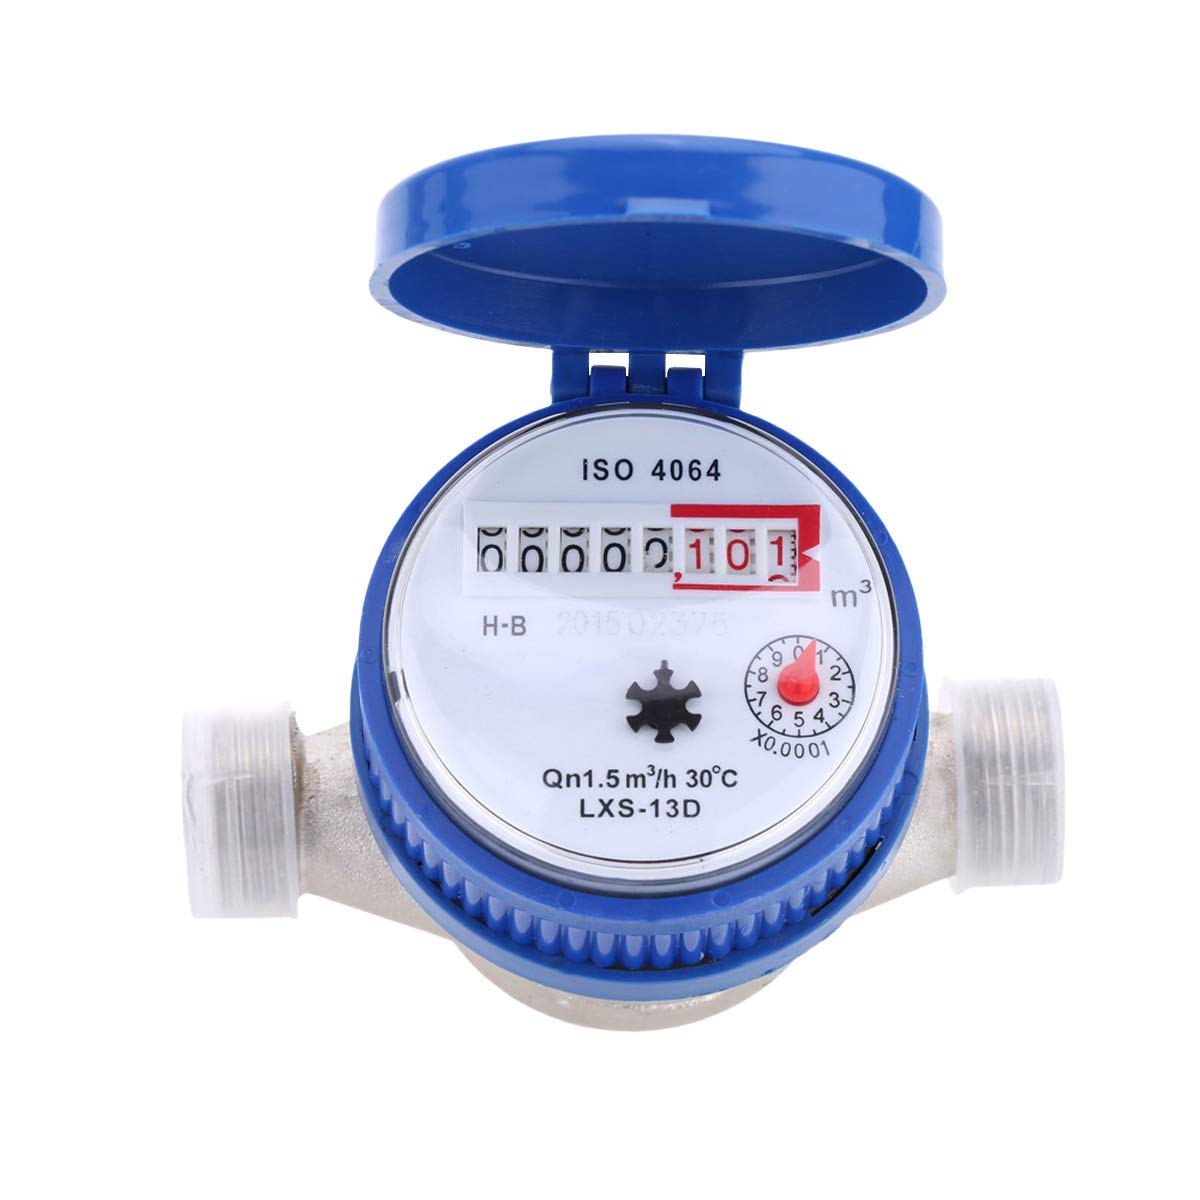 Hemobllo Water Meter Water Flow Meter Cold Water Meter for Garden and Home use by Hemobllo